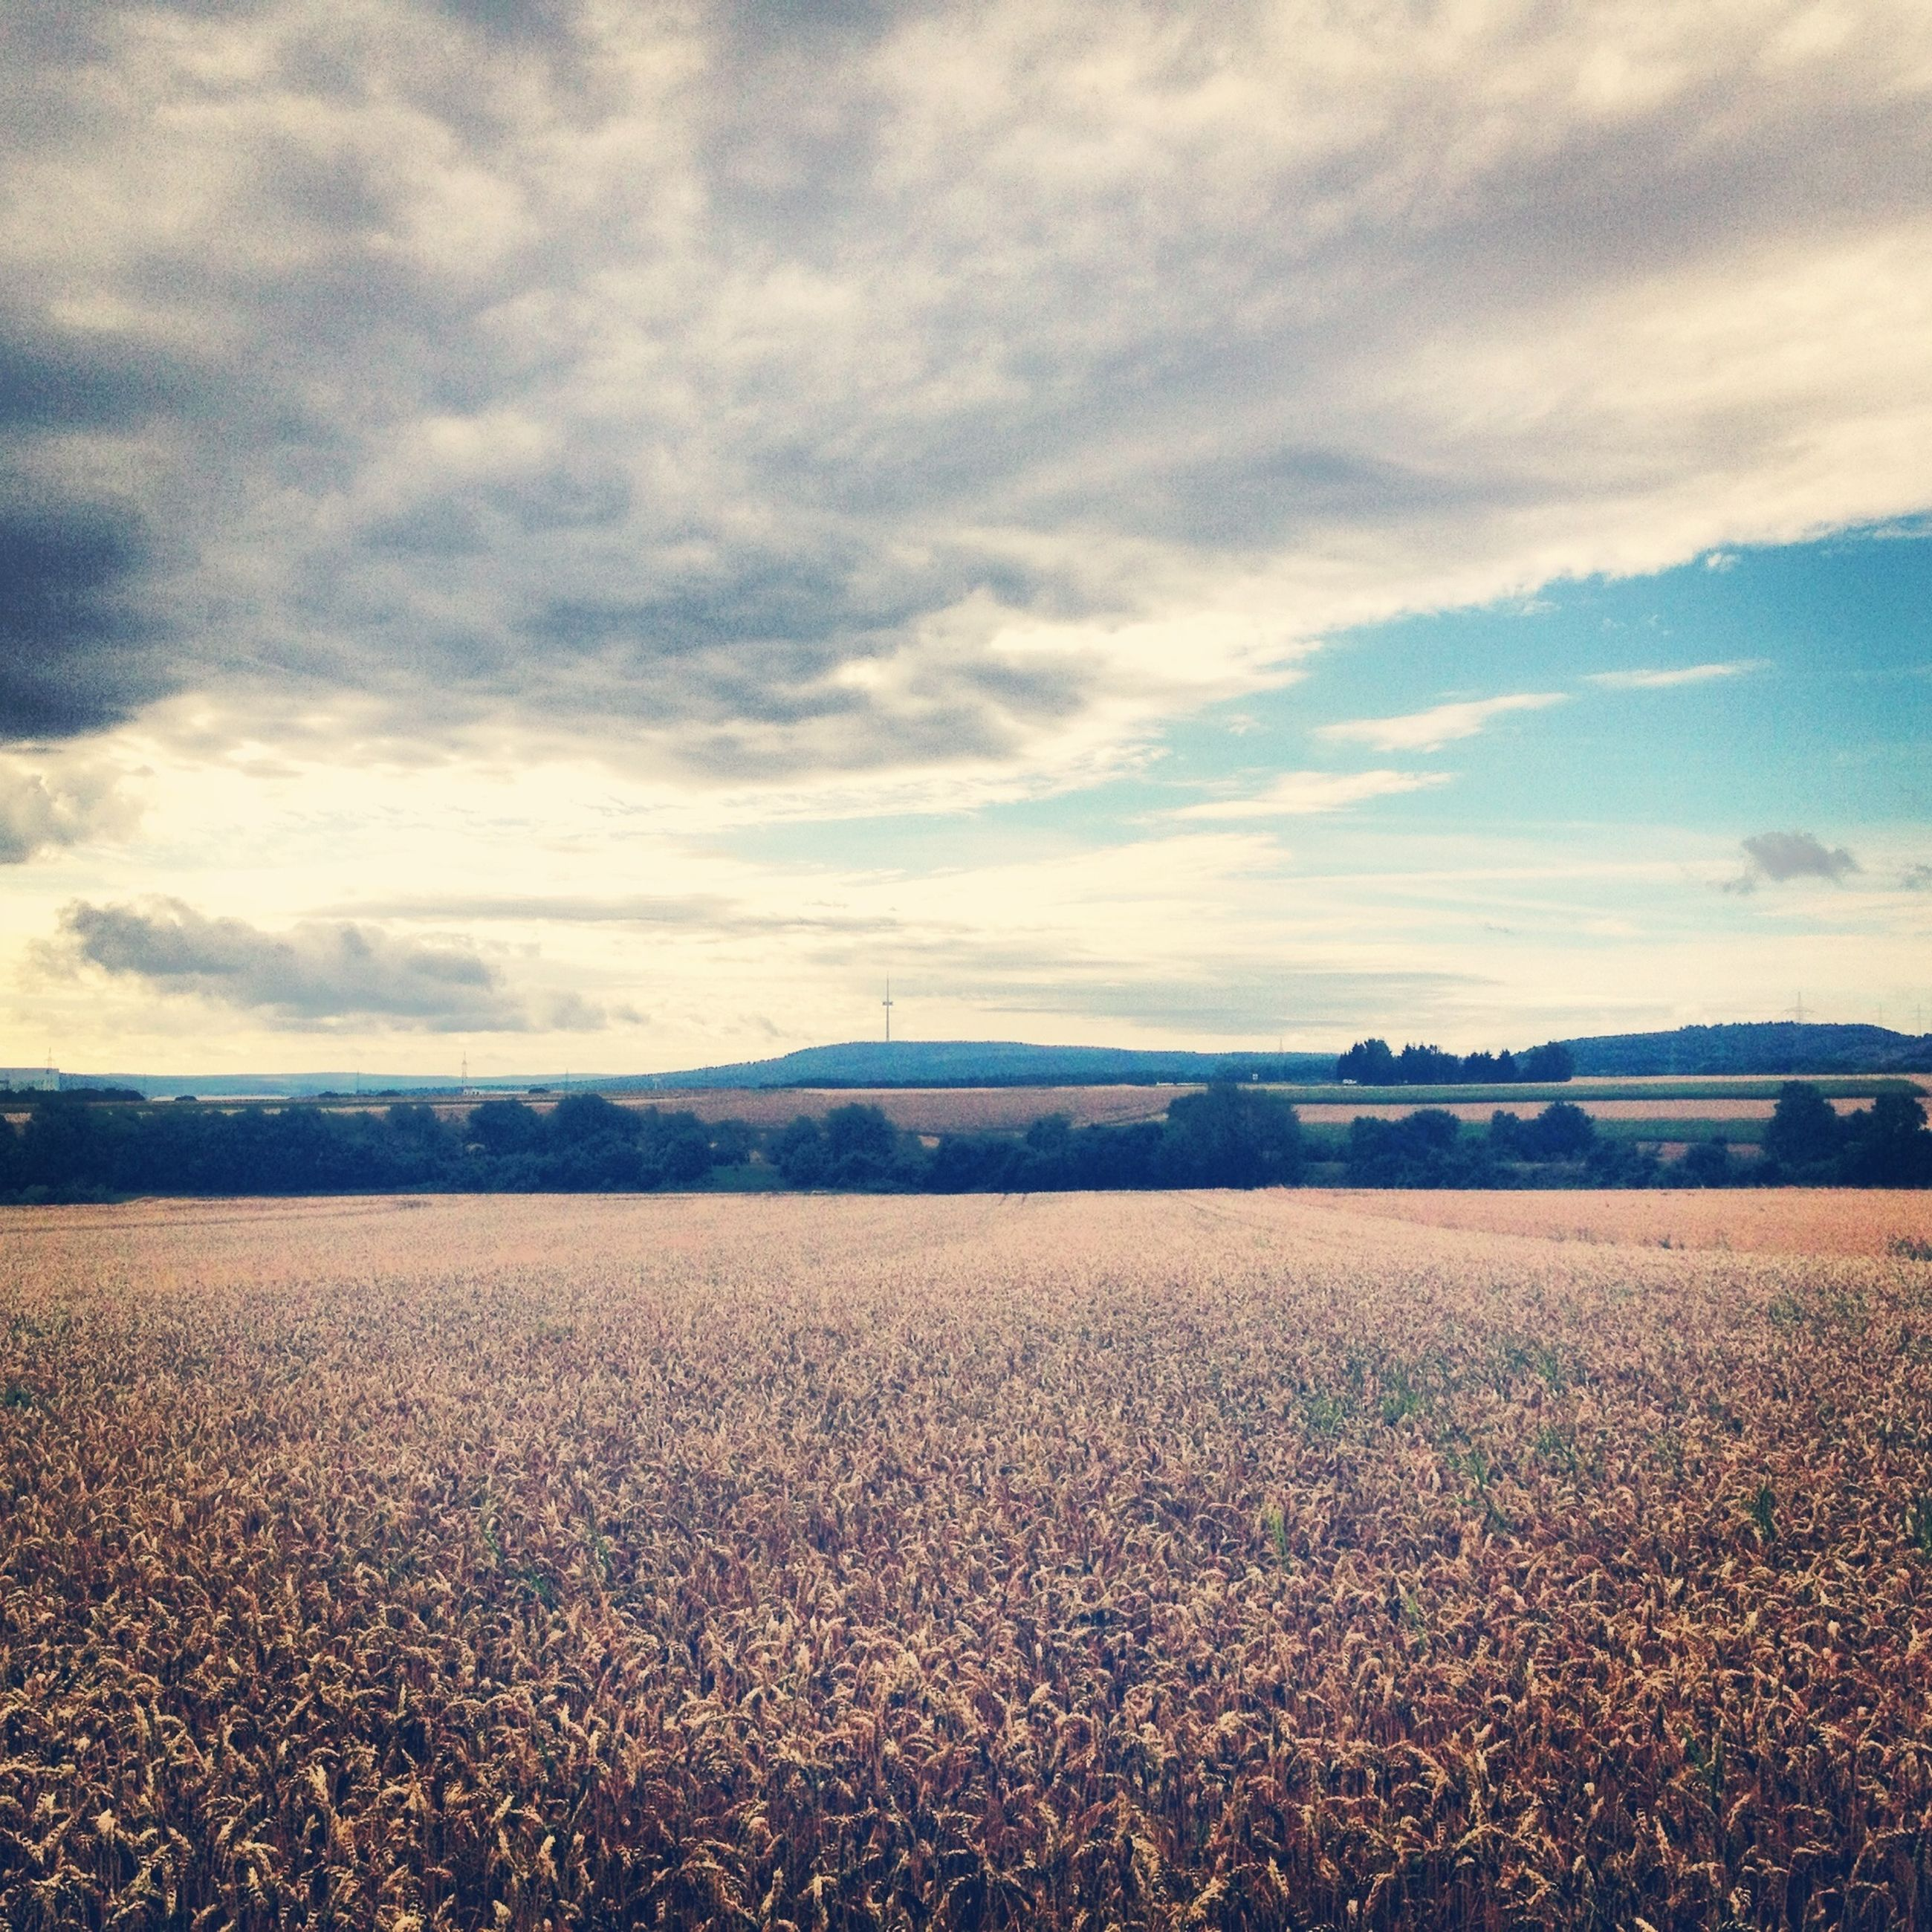 landscape, sky, tranquil scene, agriculture, rural scene, field, tranquility, scenics, cloud - sky, beauty in nature, nature, farm, horizon over land, cloud, cloudy, crop, day, remote, outdoors, no people